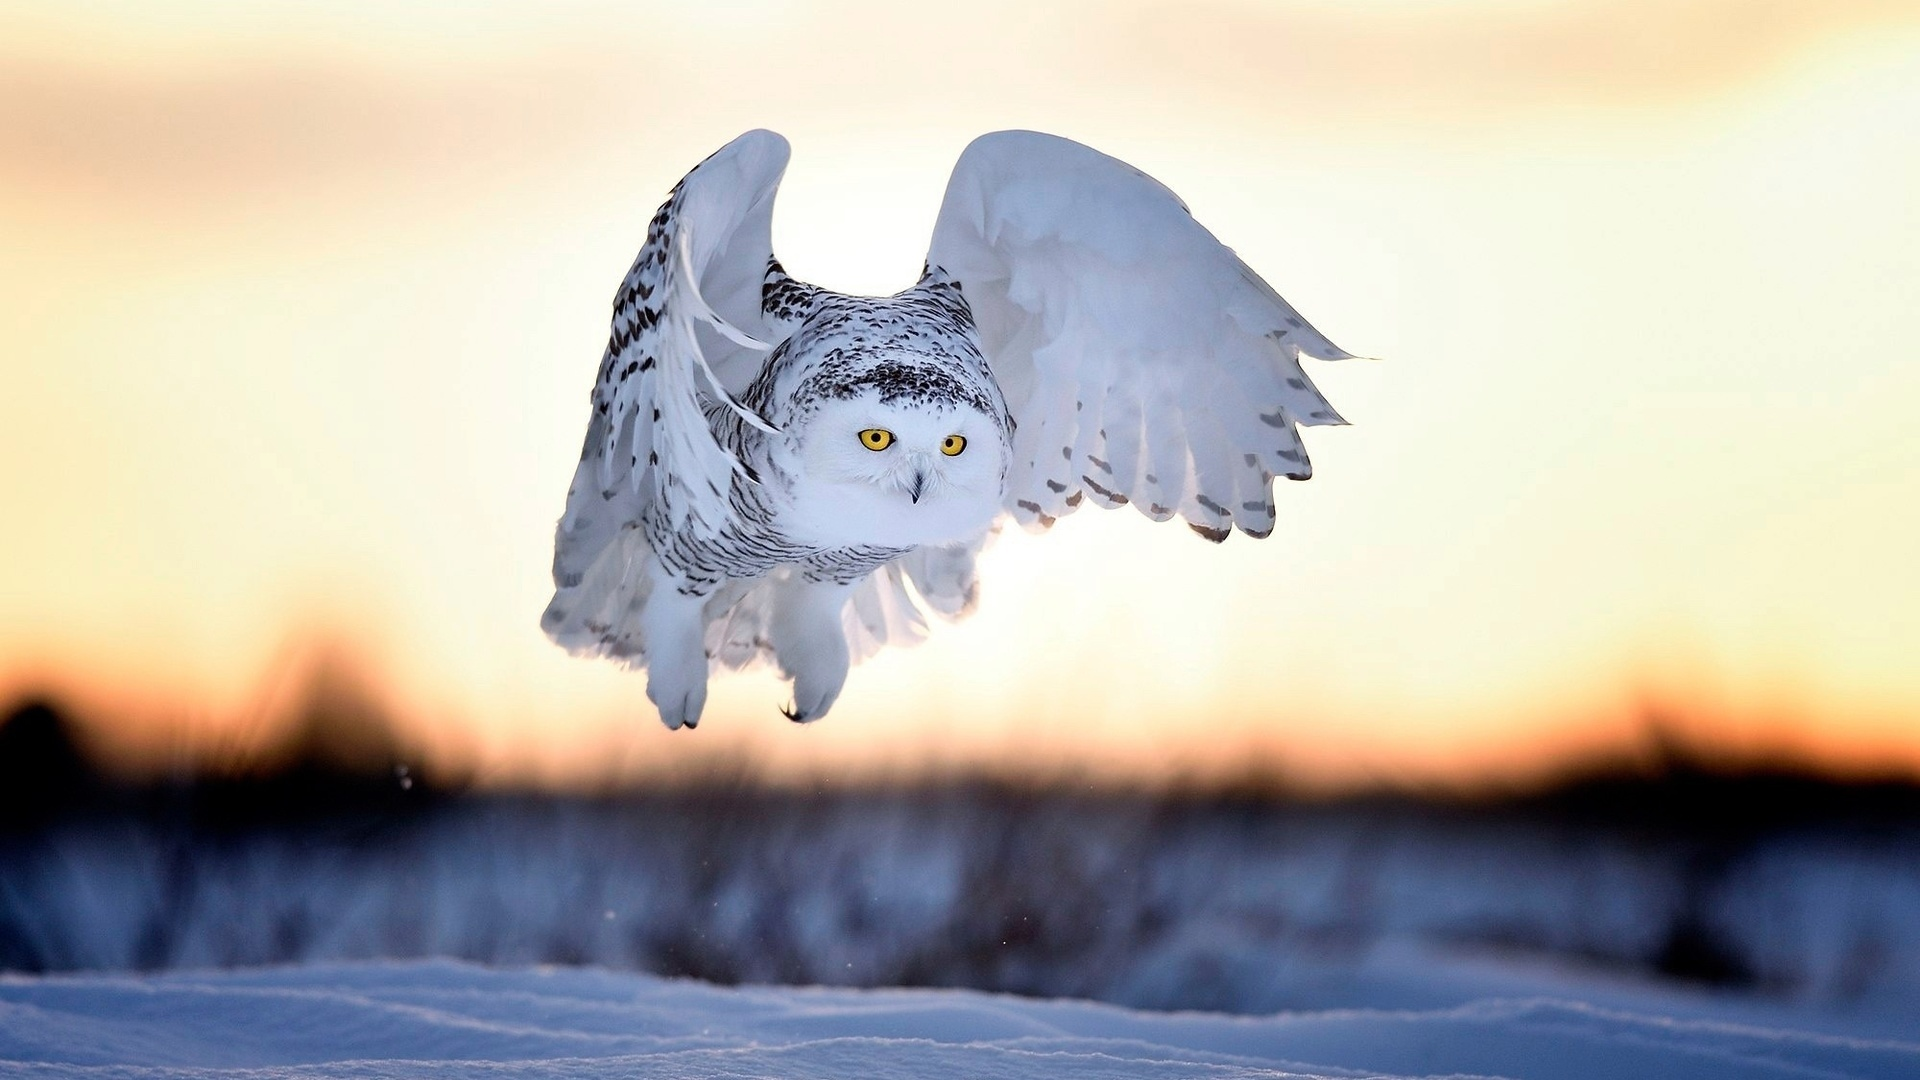 Polar Owl wallpaper for desktop